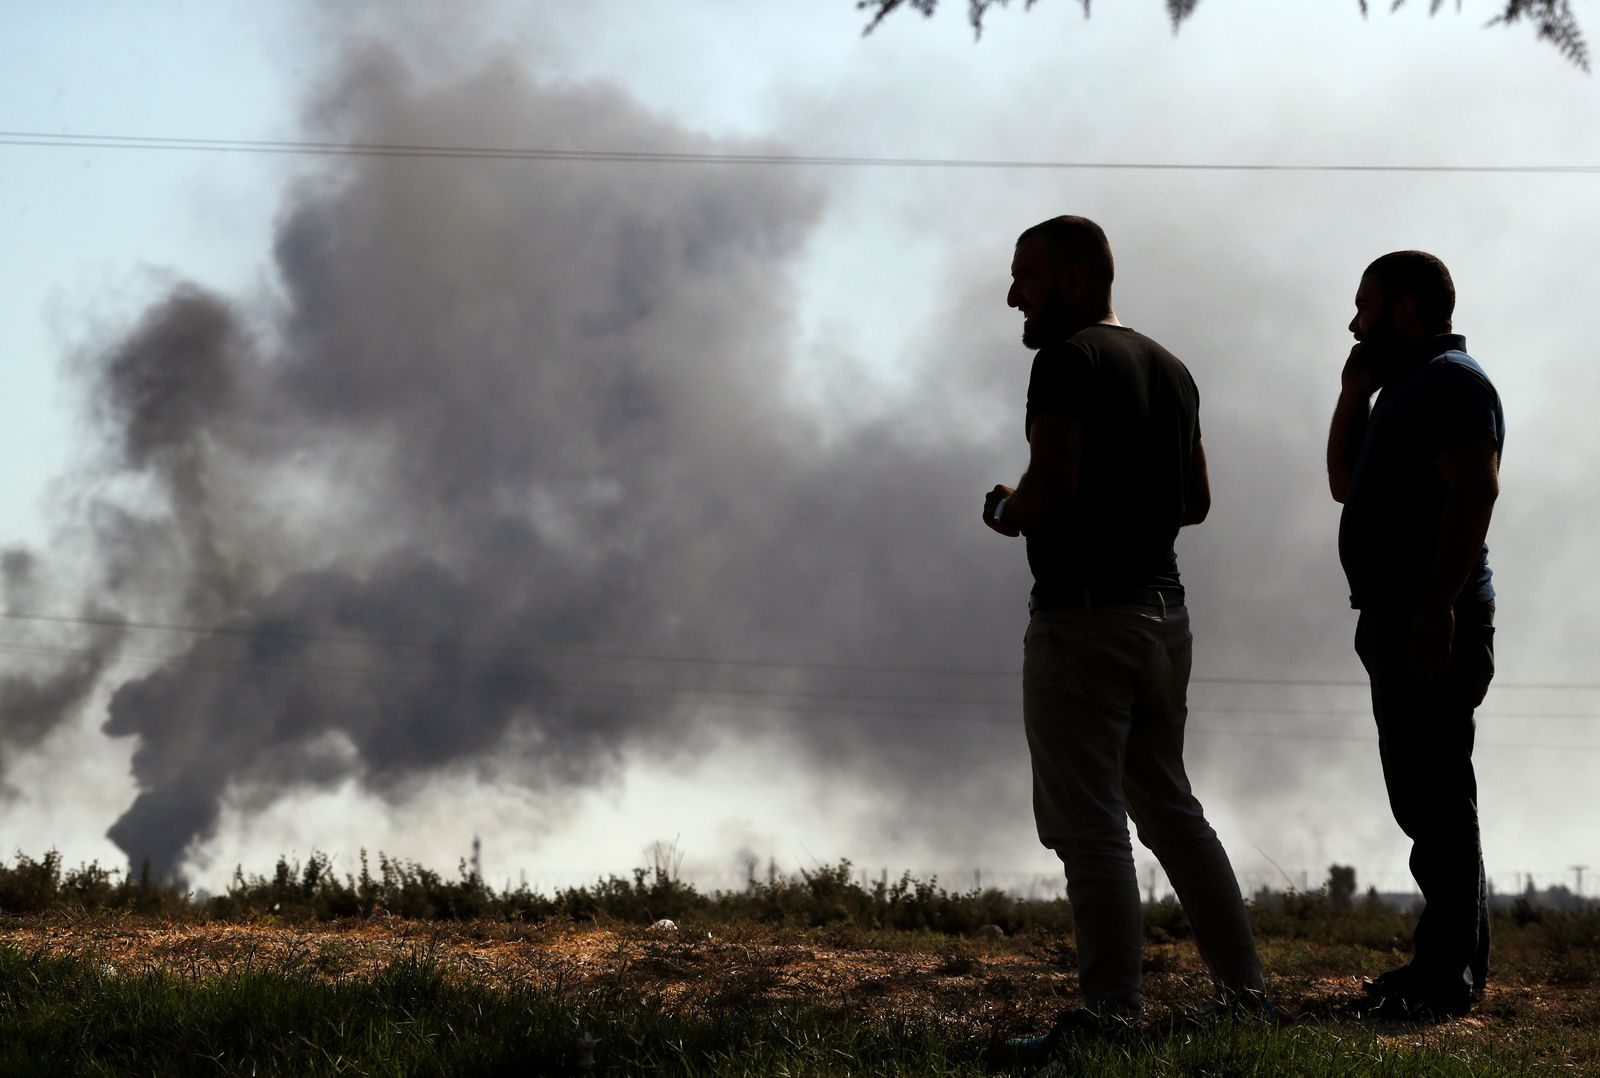 "People in Akcakale ,Sanliurfa province, southeastern Turkey, at the border with Syria, watch smoke billowing from targets inside Syria, during bombardment by Turkish forces, Thursday, Oct. 10, 2019. Turkey's foreign minister says Turkish troops intend to move some 30 kilometers (19 miles) deep into northern Syria and that its operation will last until all ""terrorists are neutralized,"" a reference to Syrian Kurdish fighters. (AP Photo/Lefteris Pitarakis)"